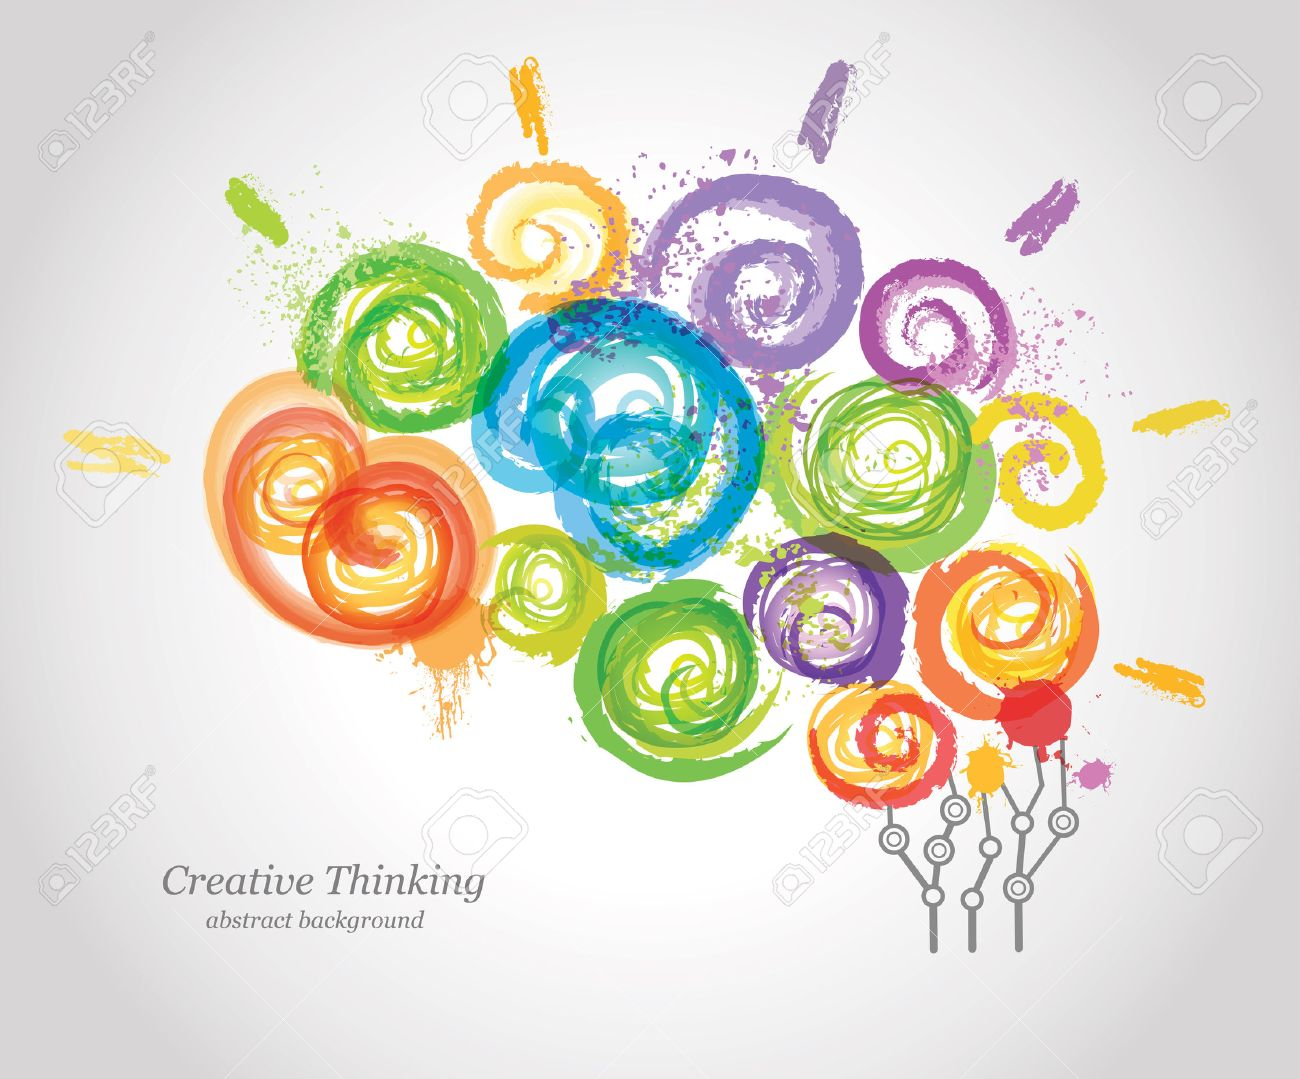 Creative Human Brain in the Work. Conceptual Background for Business and Education. - 50200389